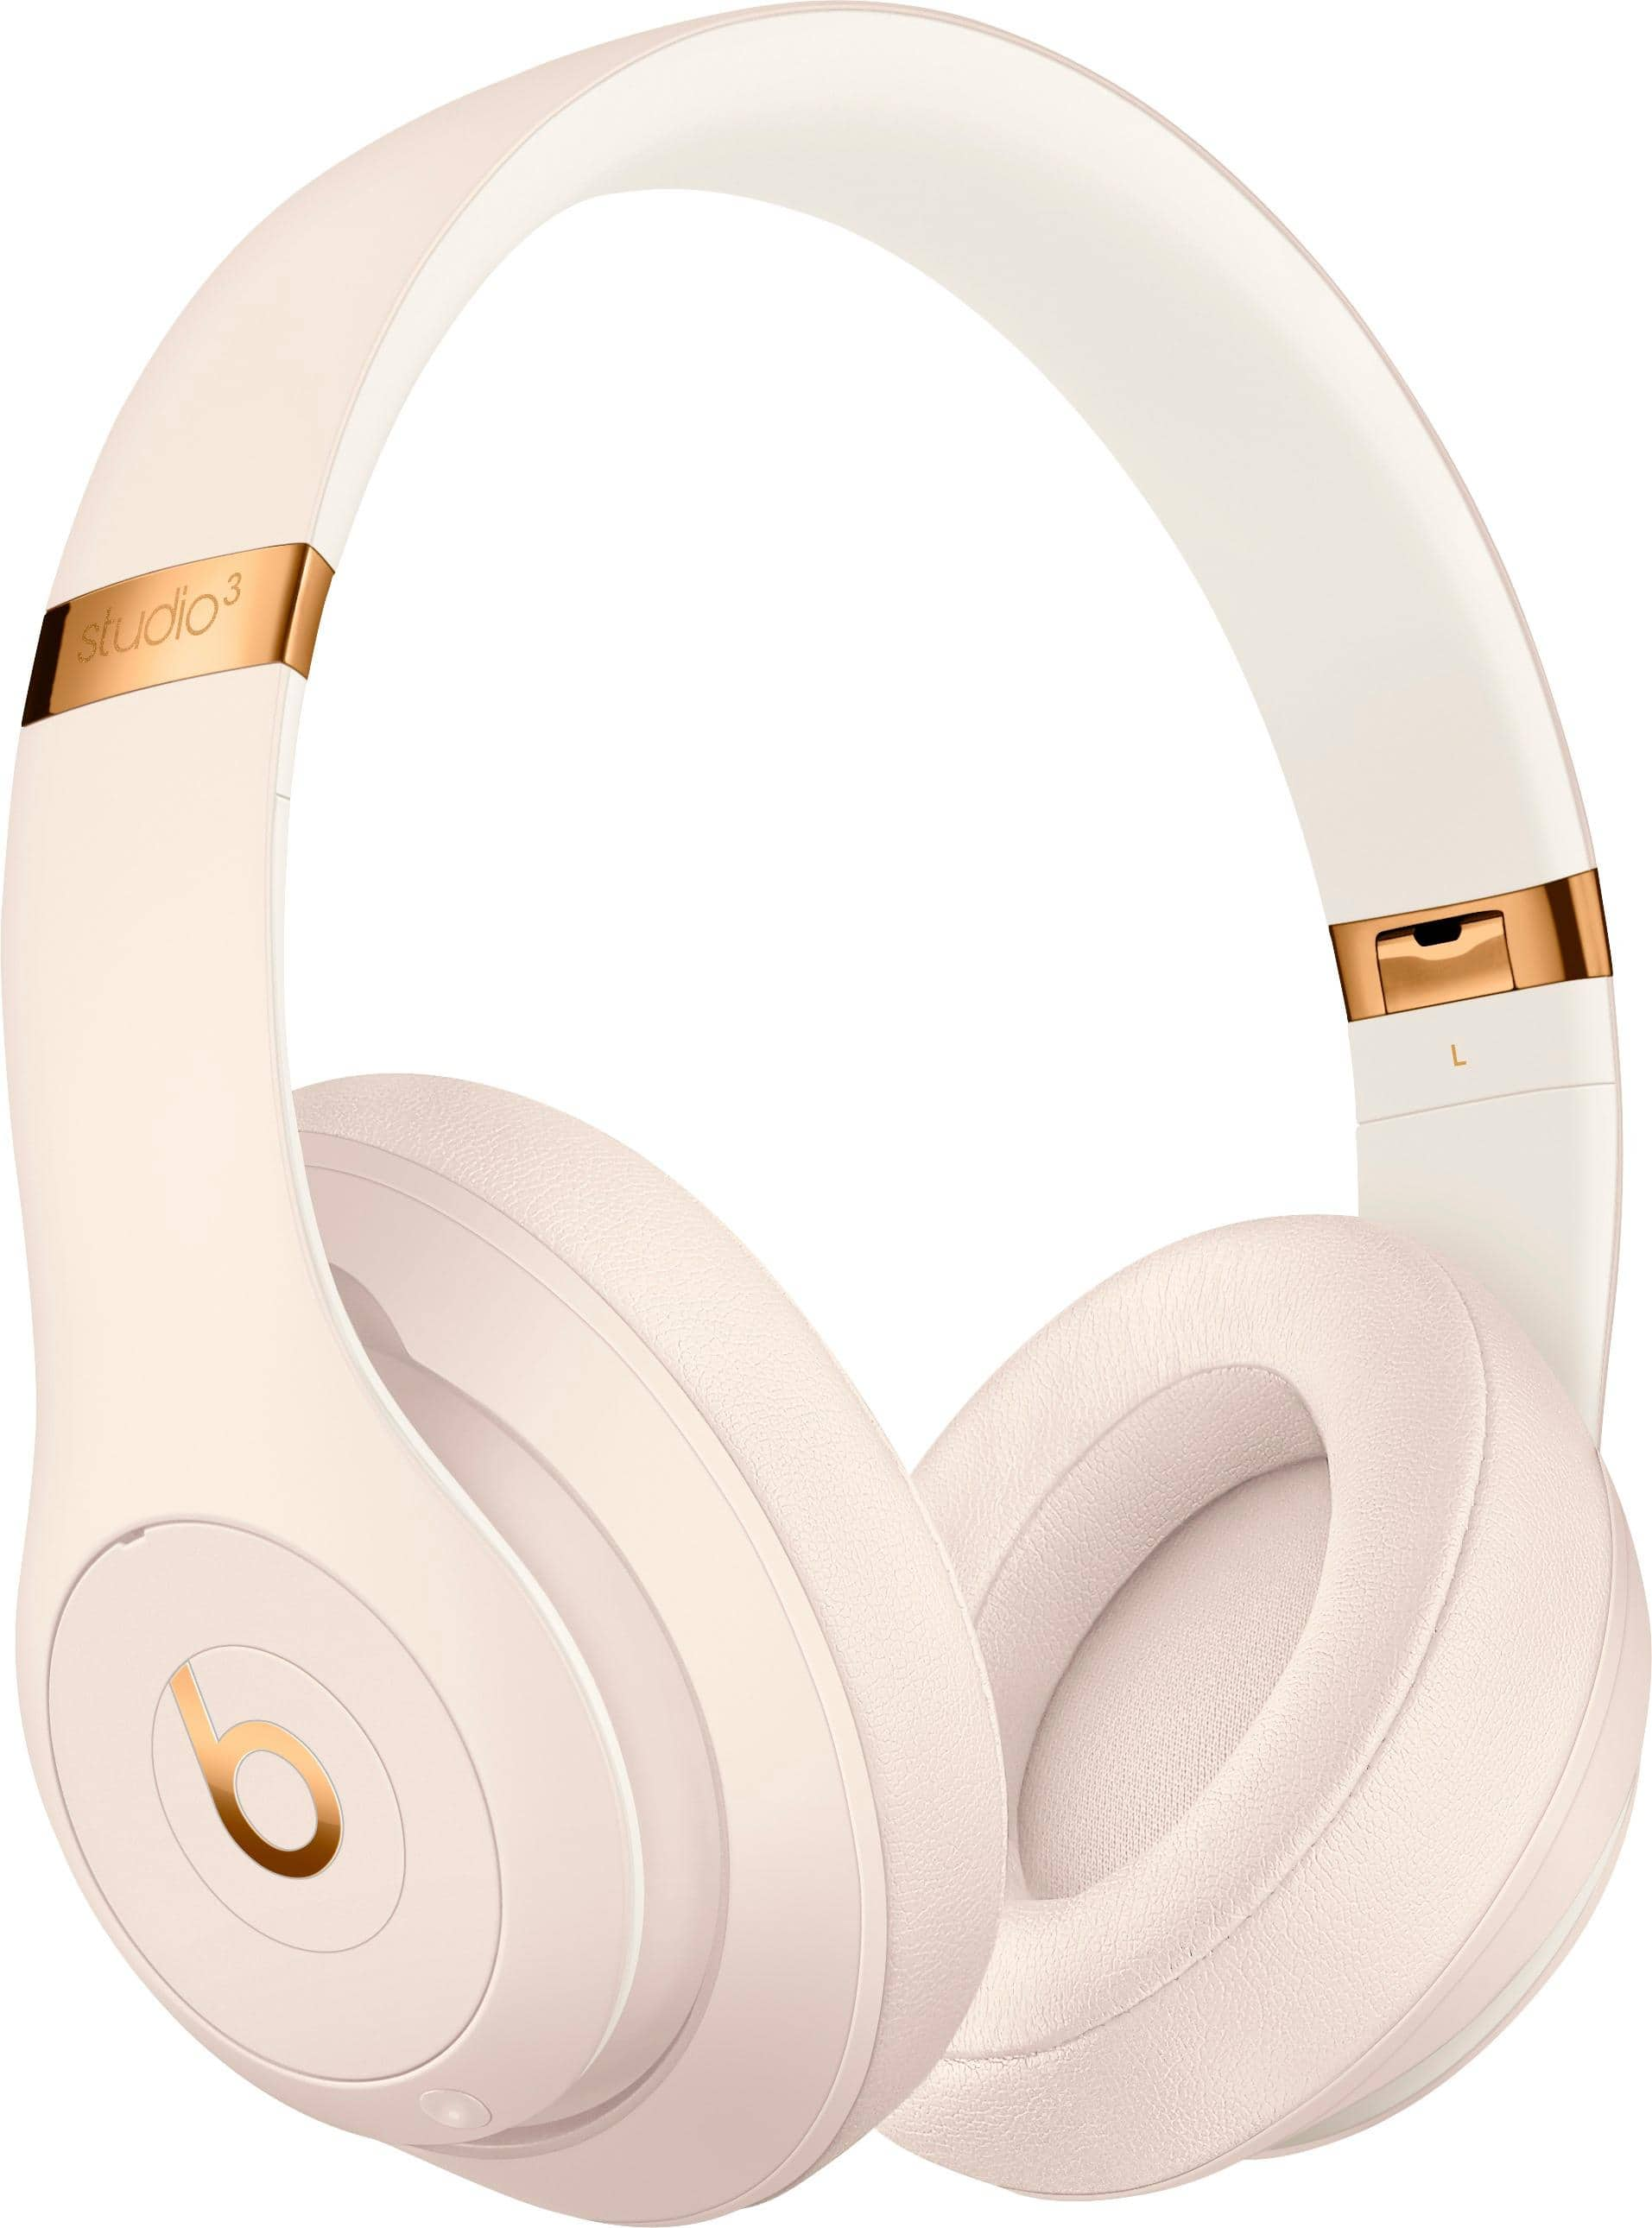 Beats by Dre Studio 3 Wireless Noise Cancelling Headphones ... f1c05f2a1caf